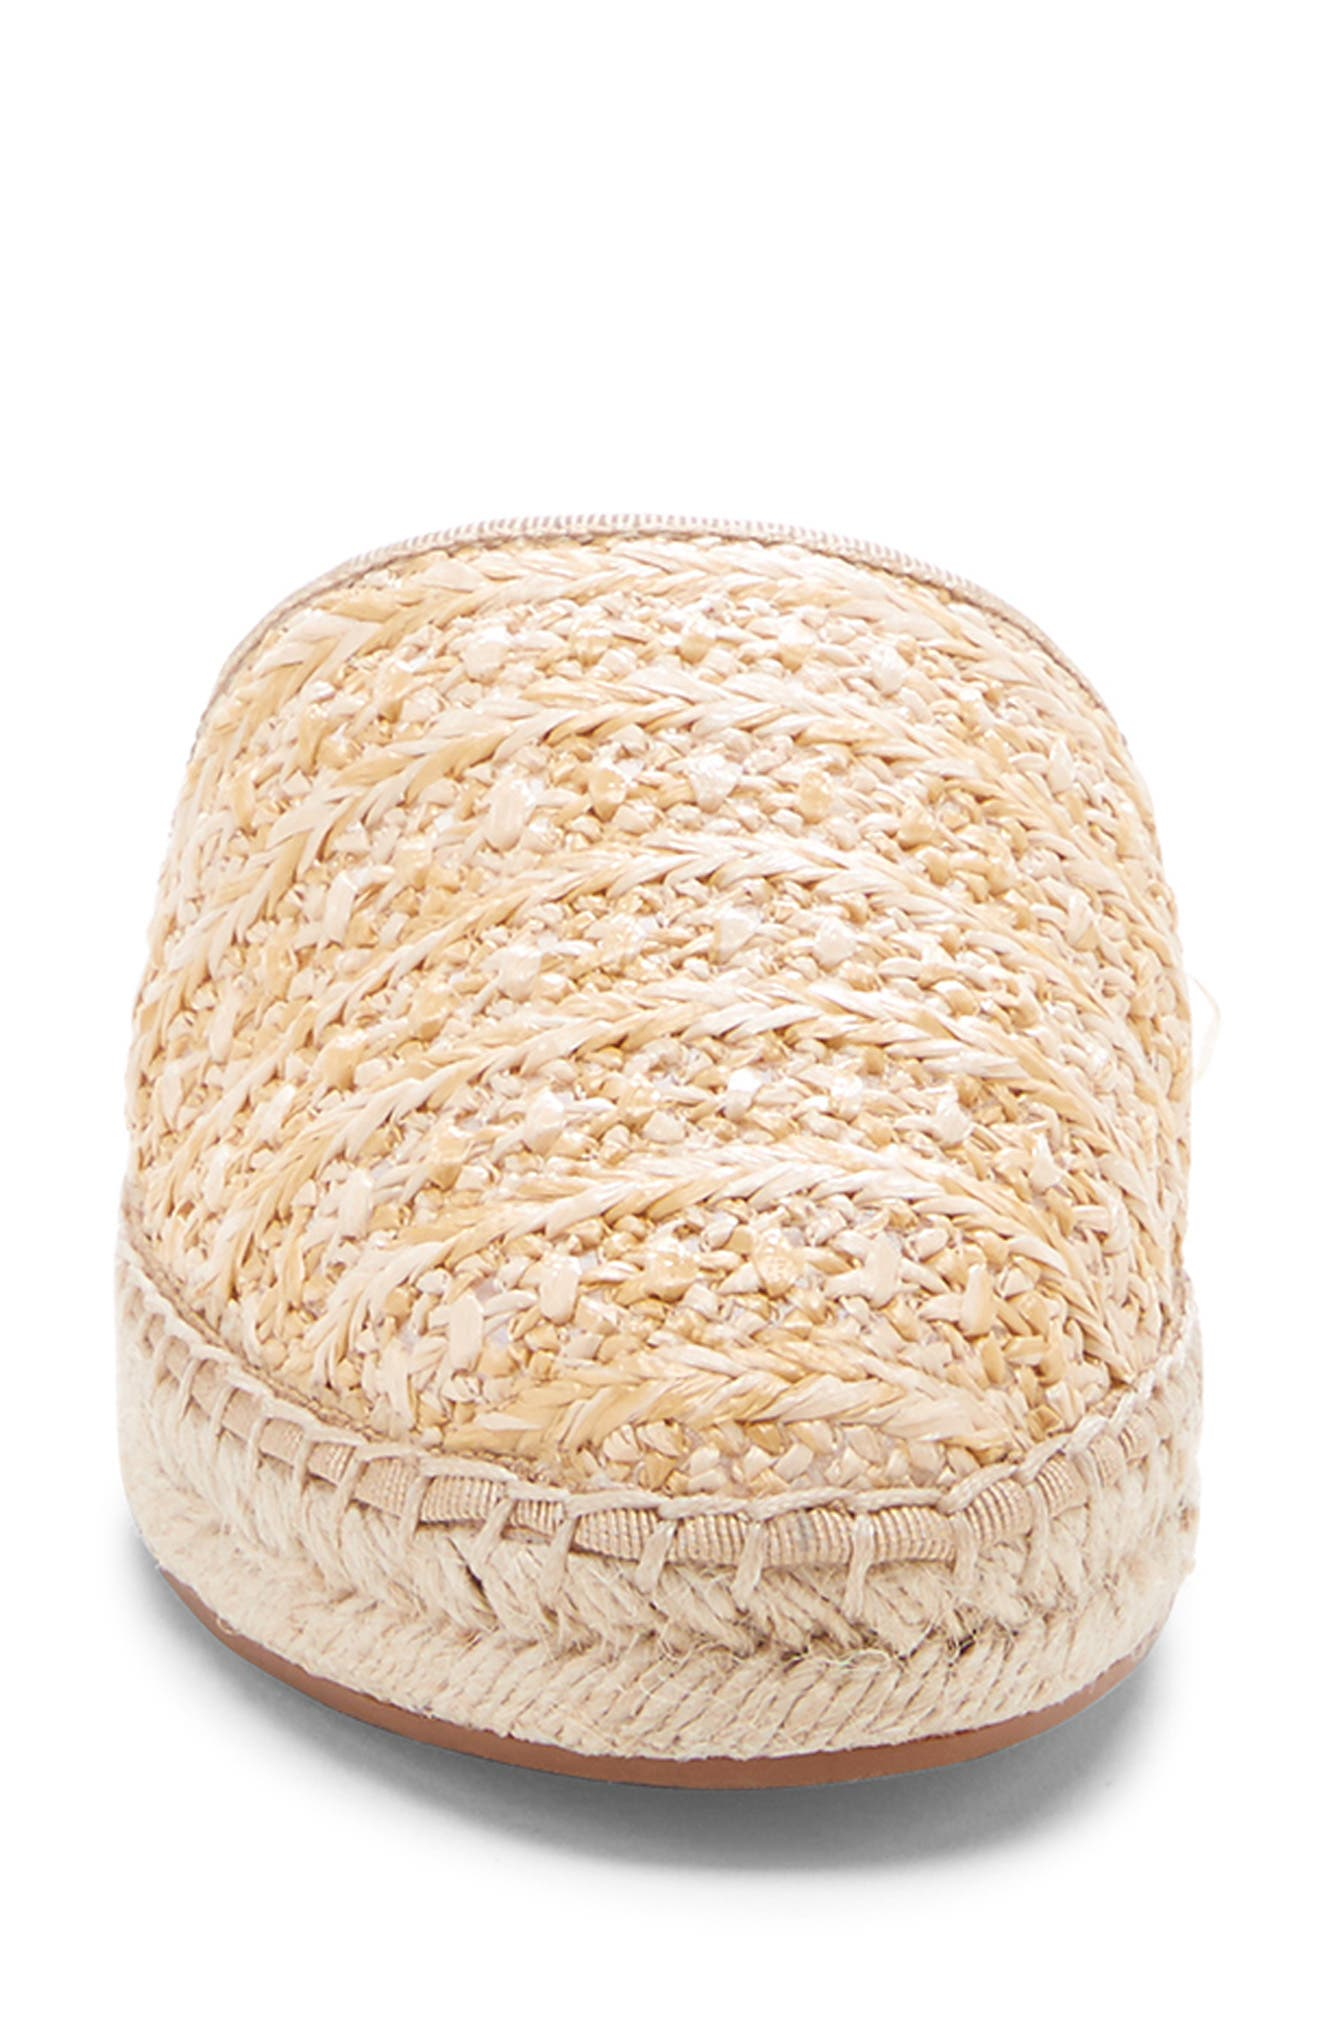 SOLE SOCIETY, Sadelle Espadrille Mule, Alternate thumbnail 4, color, NATURAL FABRIC